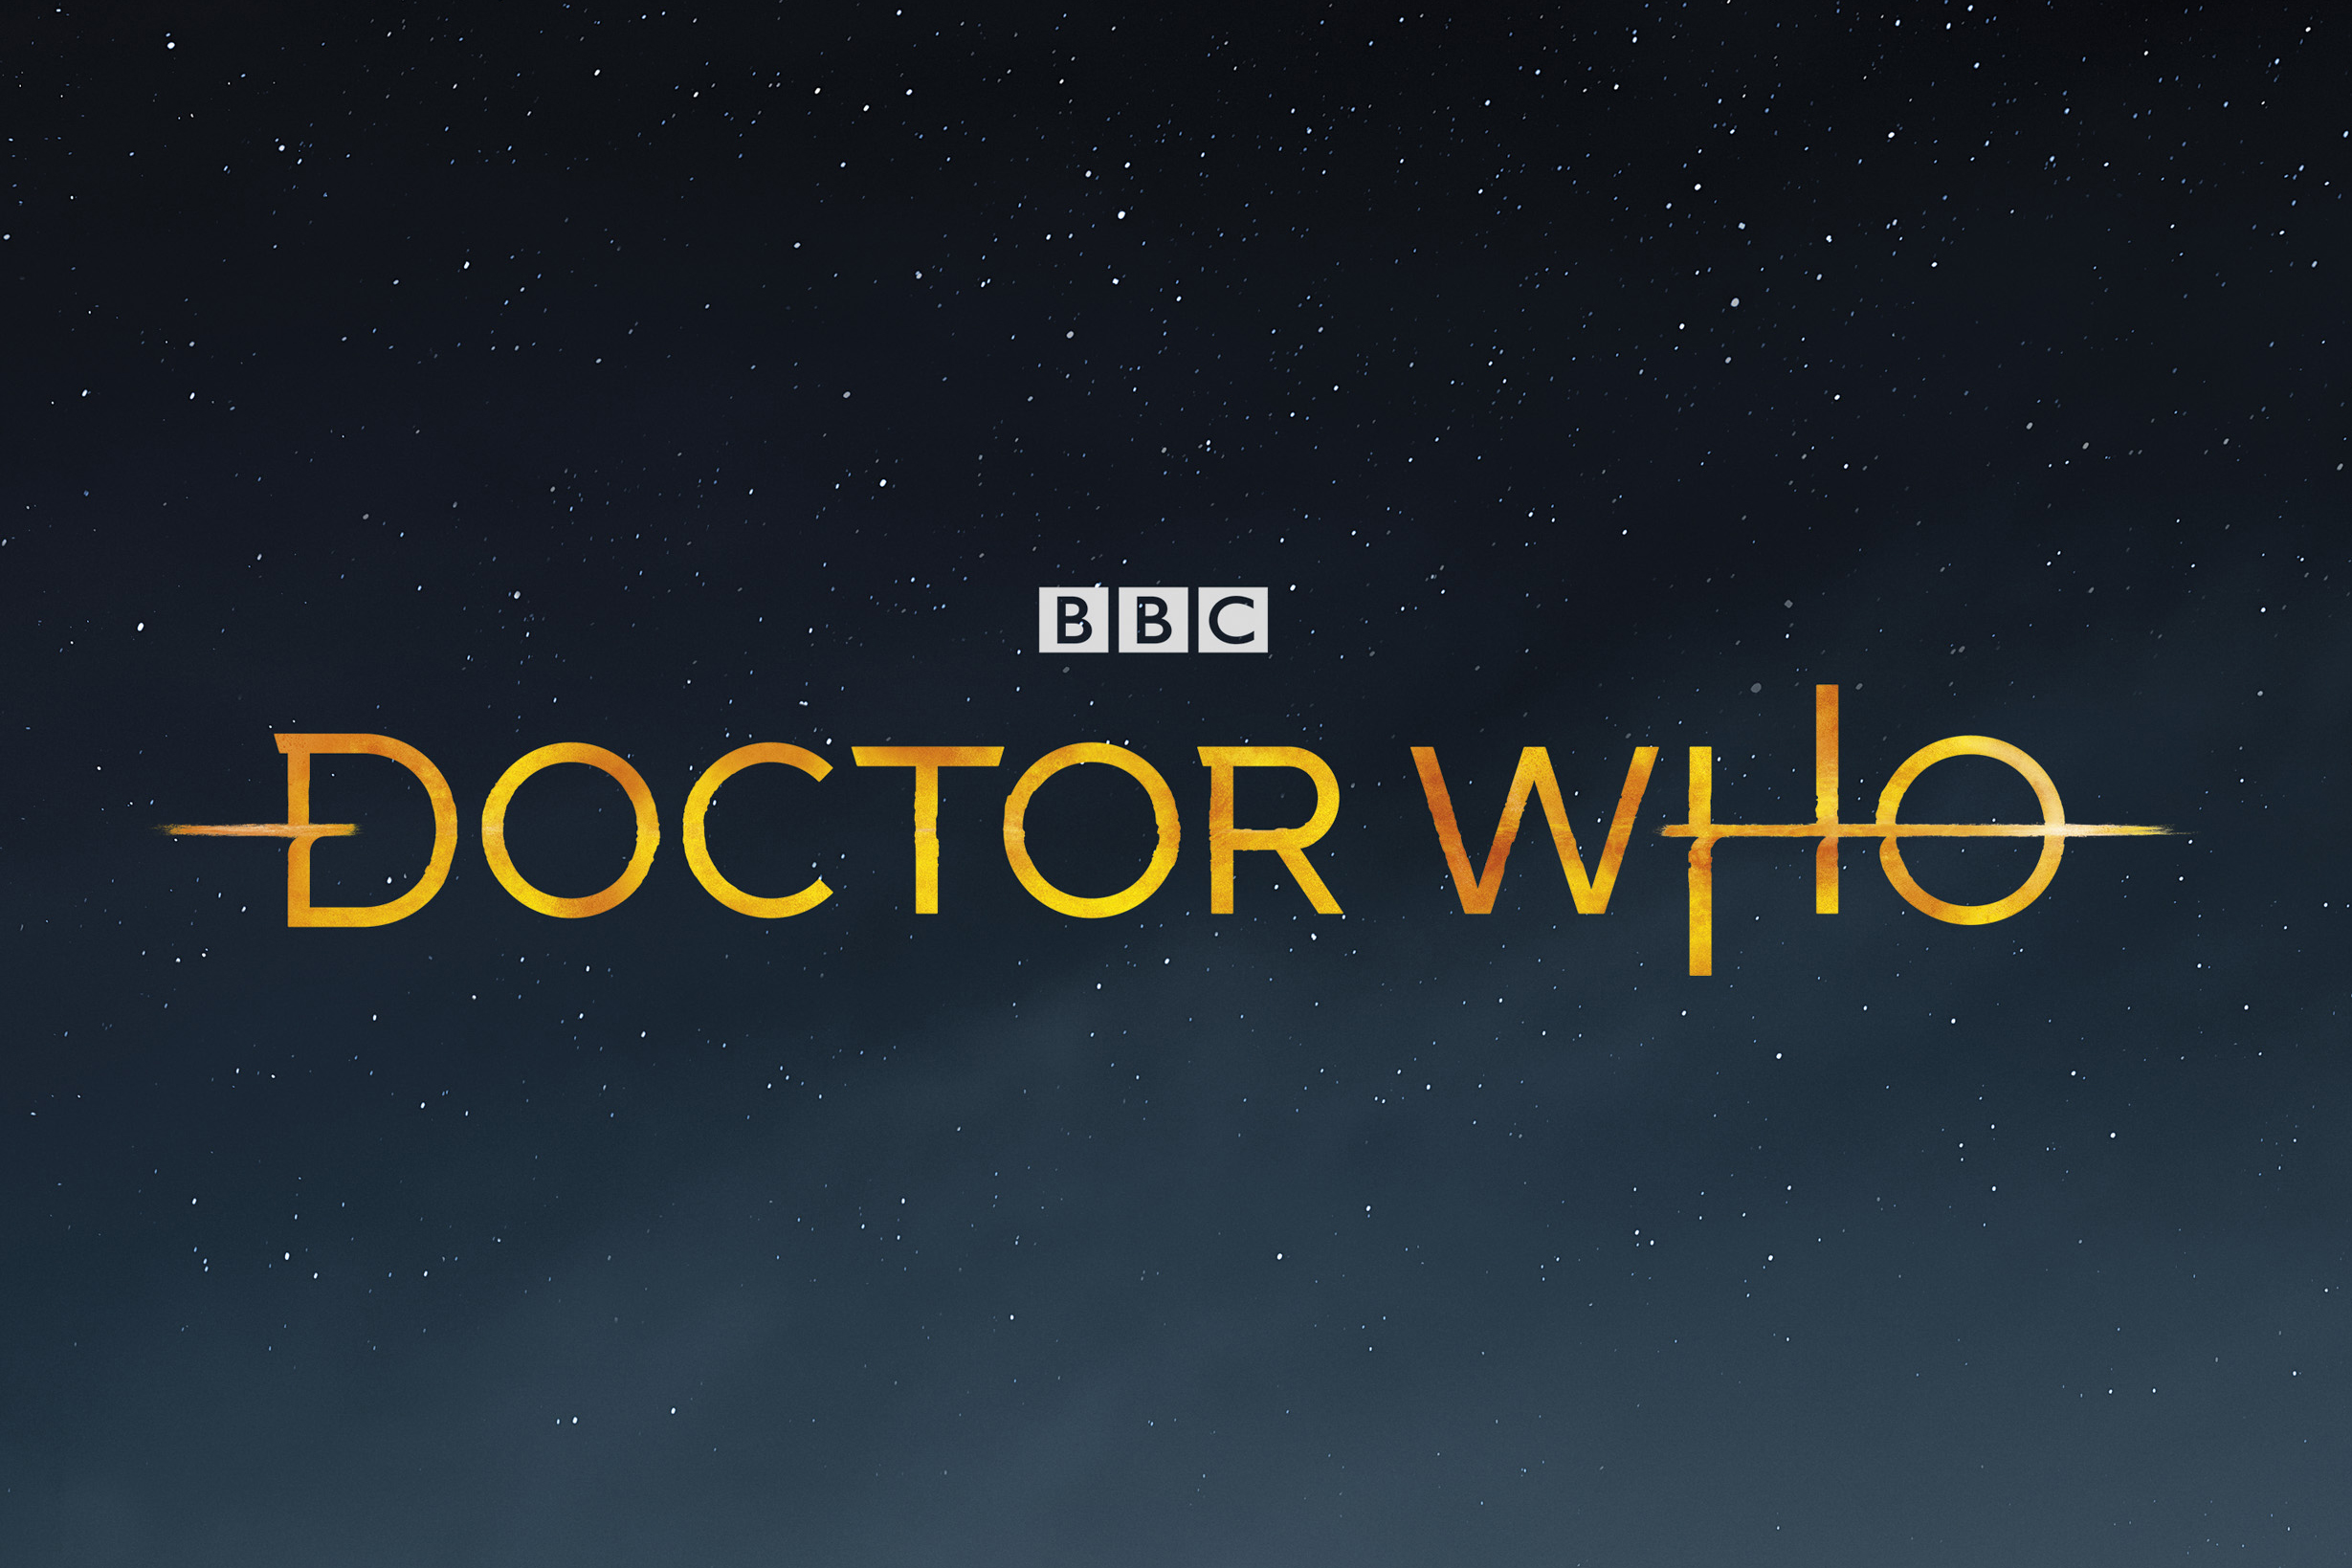 Doctor Who Over 500 Episodes To Stream Online Via Twitch